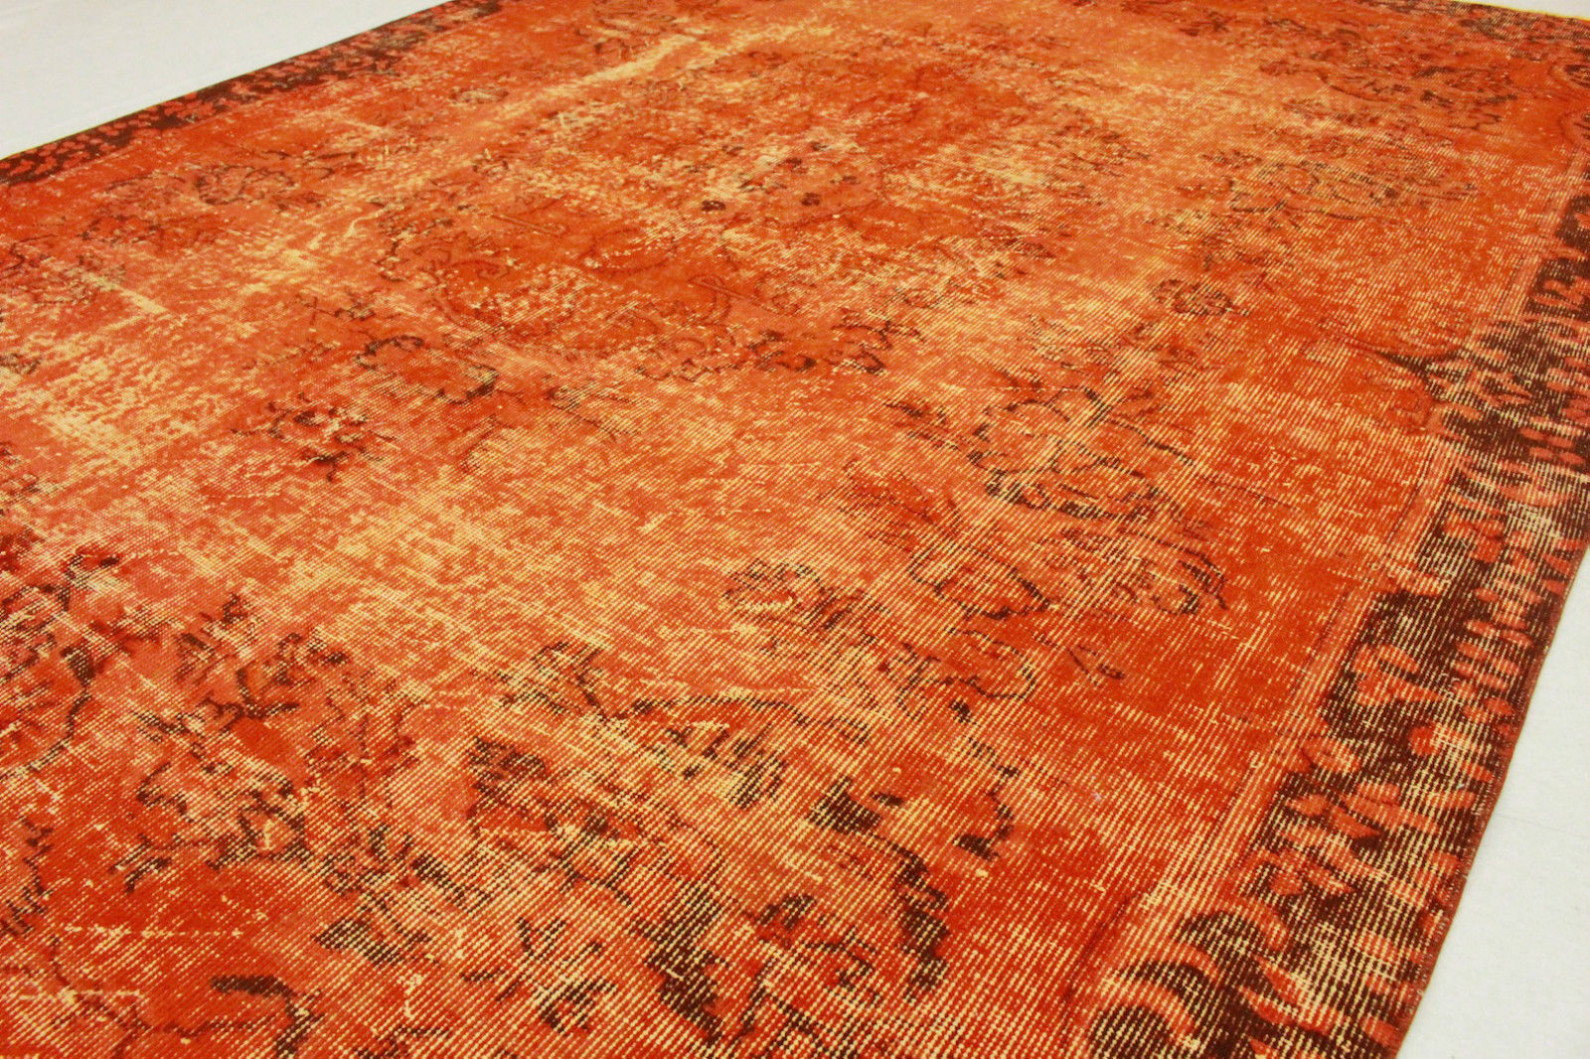 Teppich orange  Vintage Teppich Orange in 290x200cm (1011-5132) bei carpetido.de ...